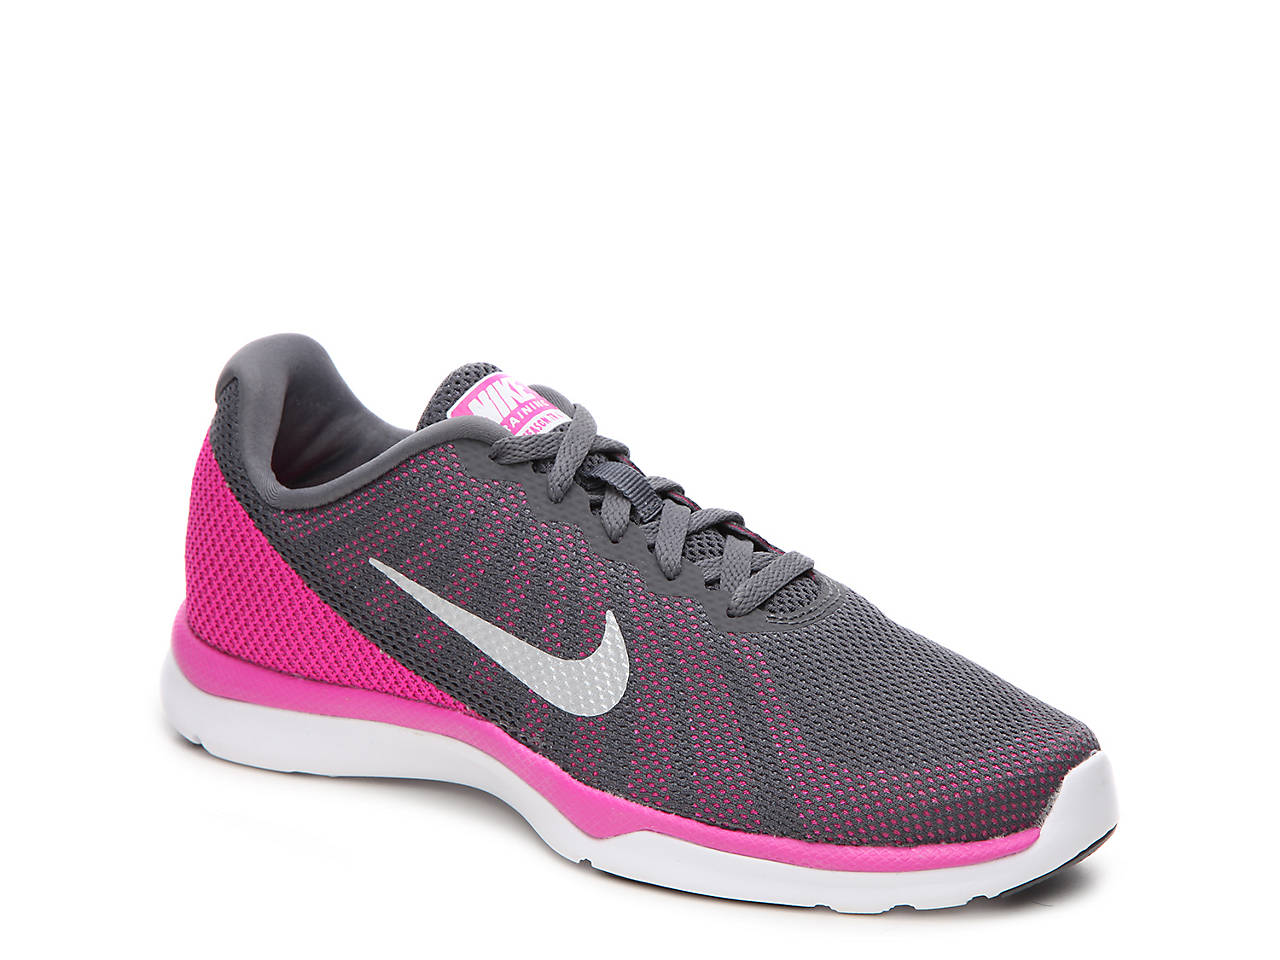 aa38ee2f3c47 Nike In Season TR 6 Training Shoe - Women s Women s Shoes